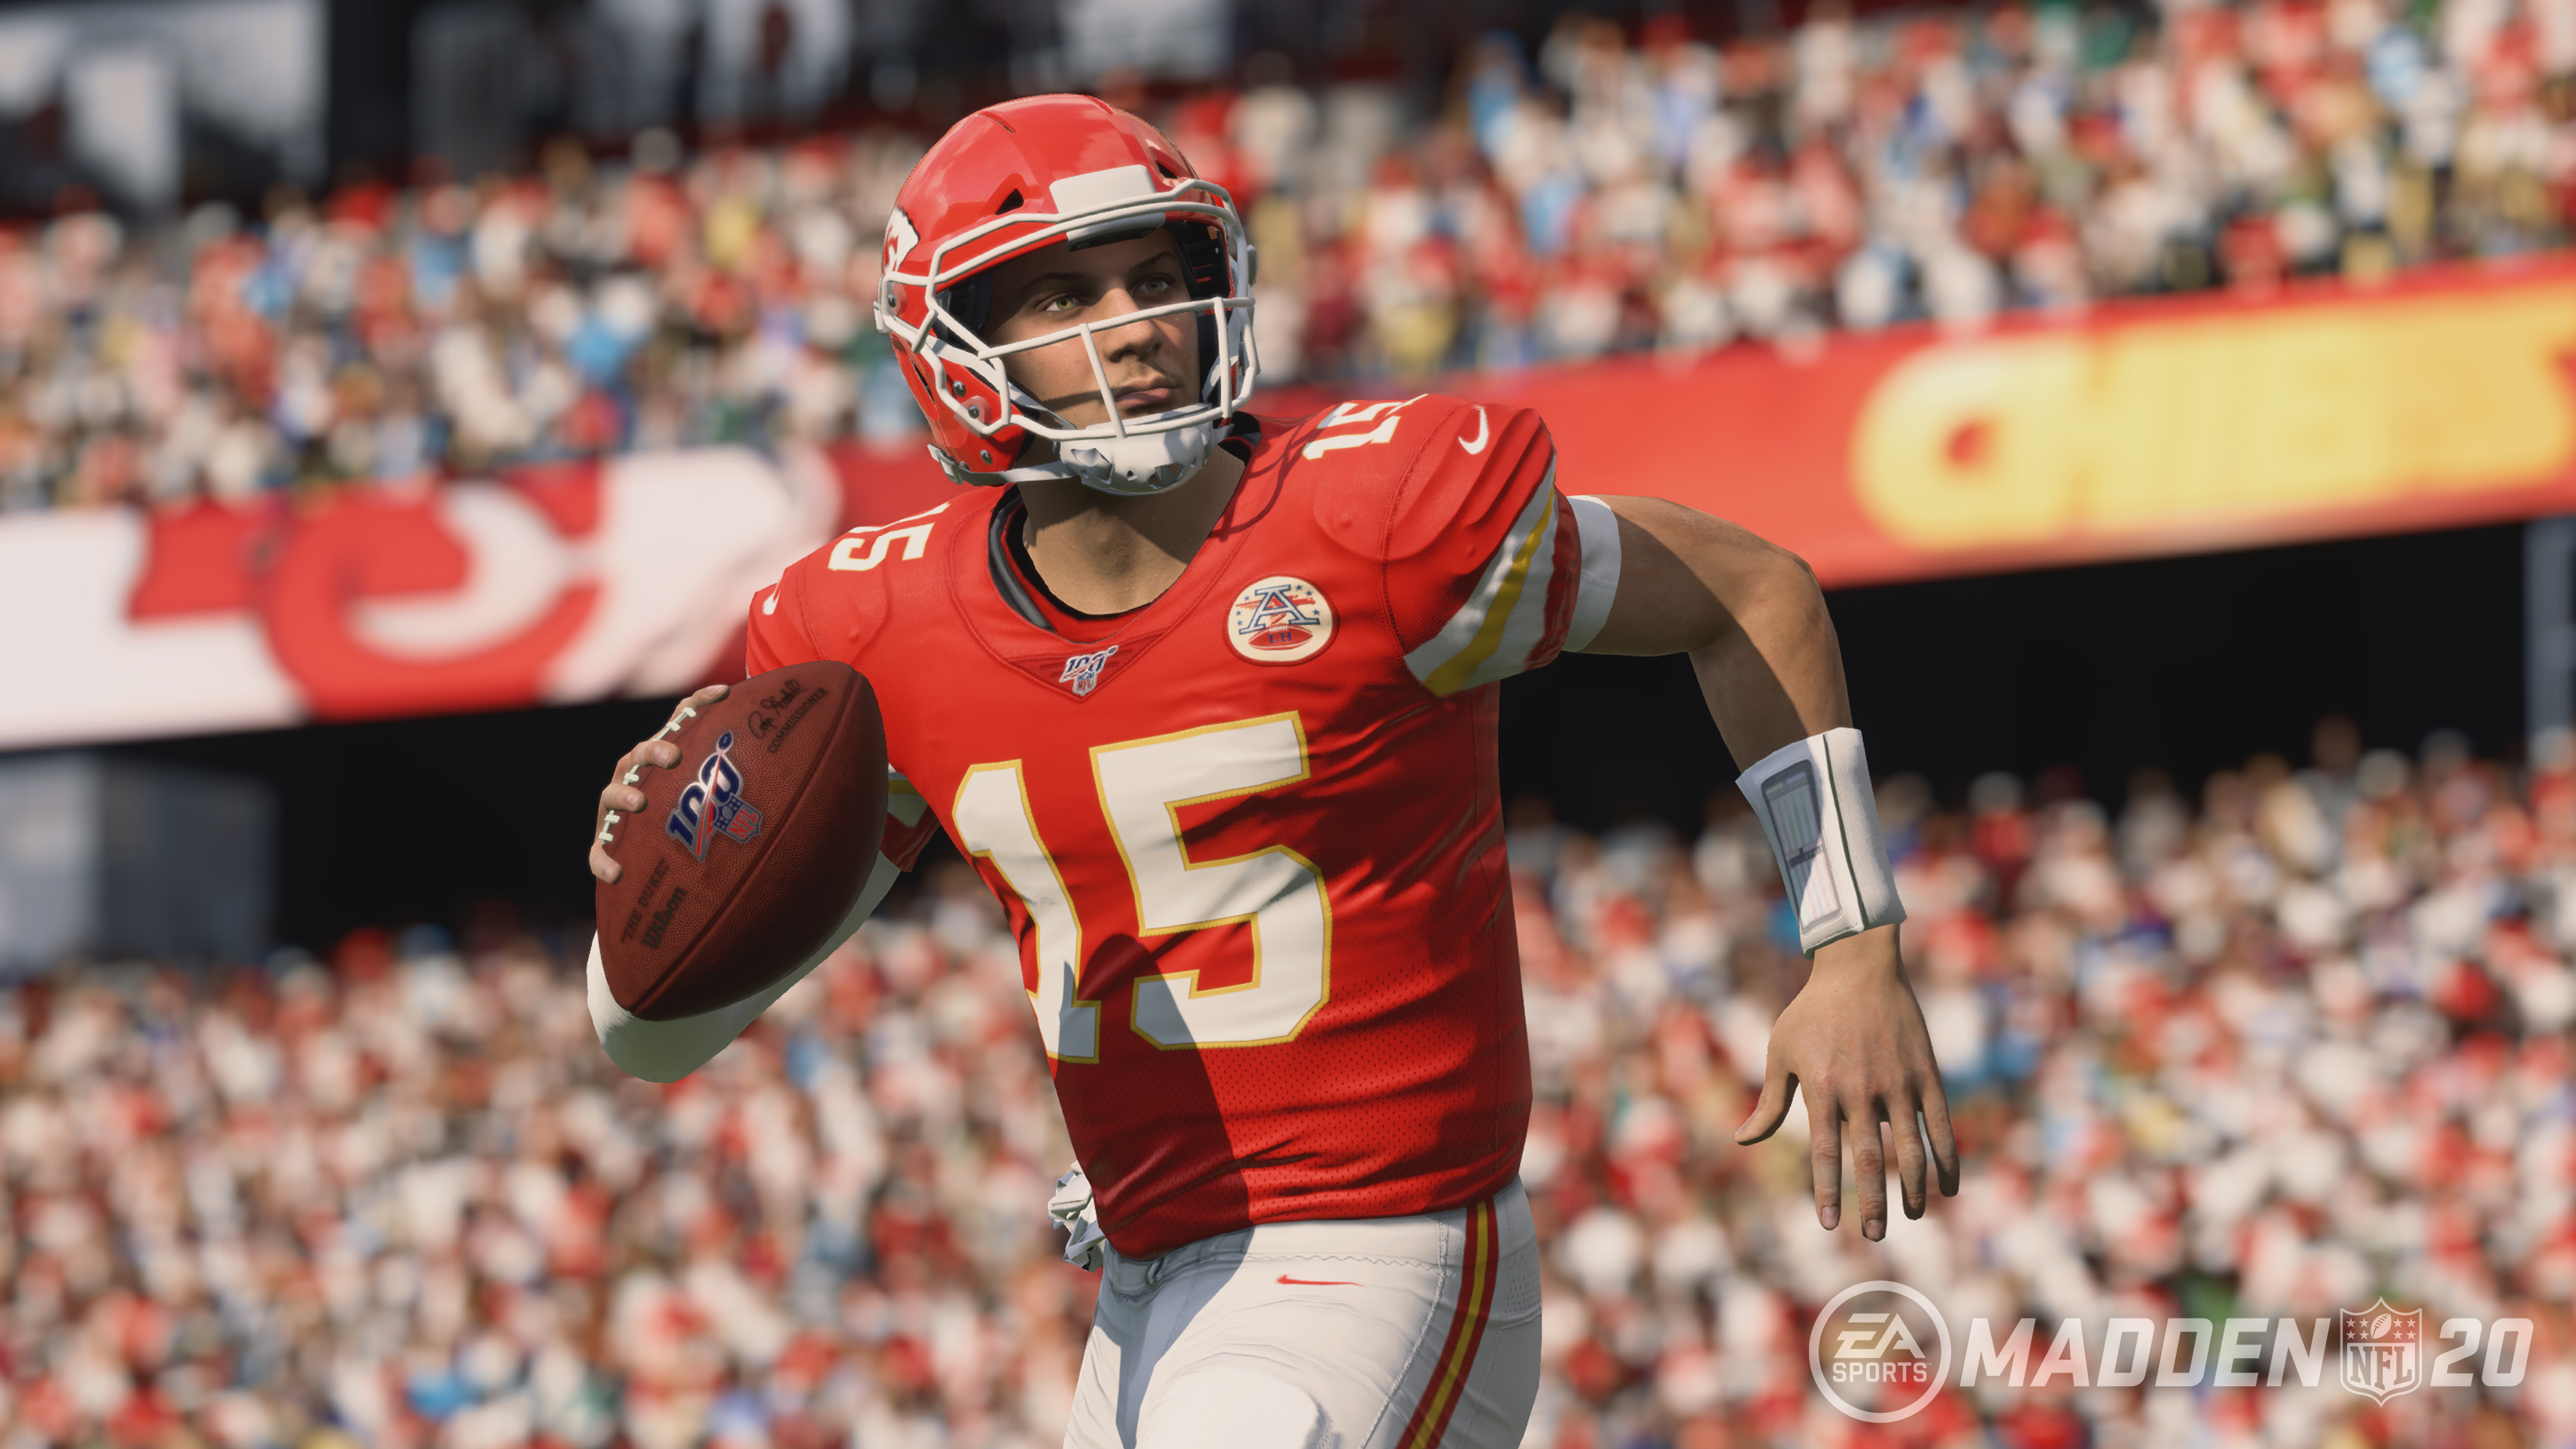 'Madden NFL 20' Will Be Free-To-Play During NFL Draft Weekend